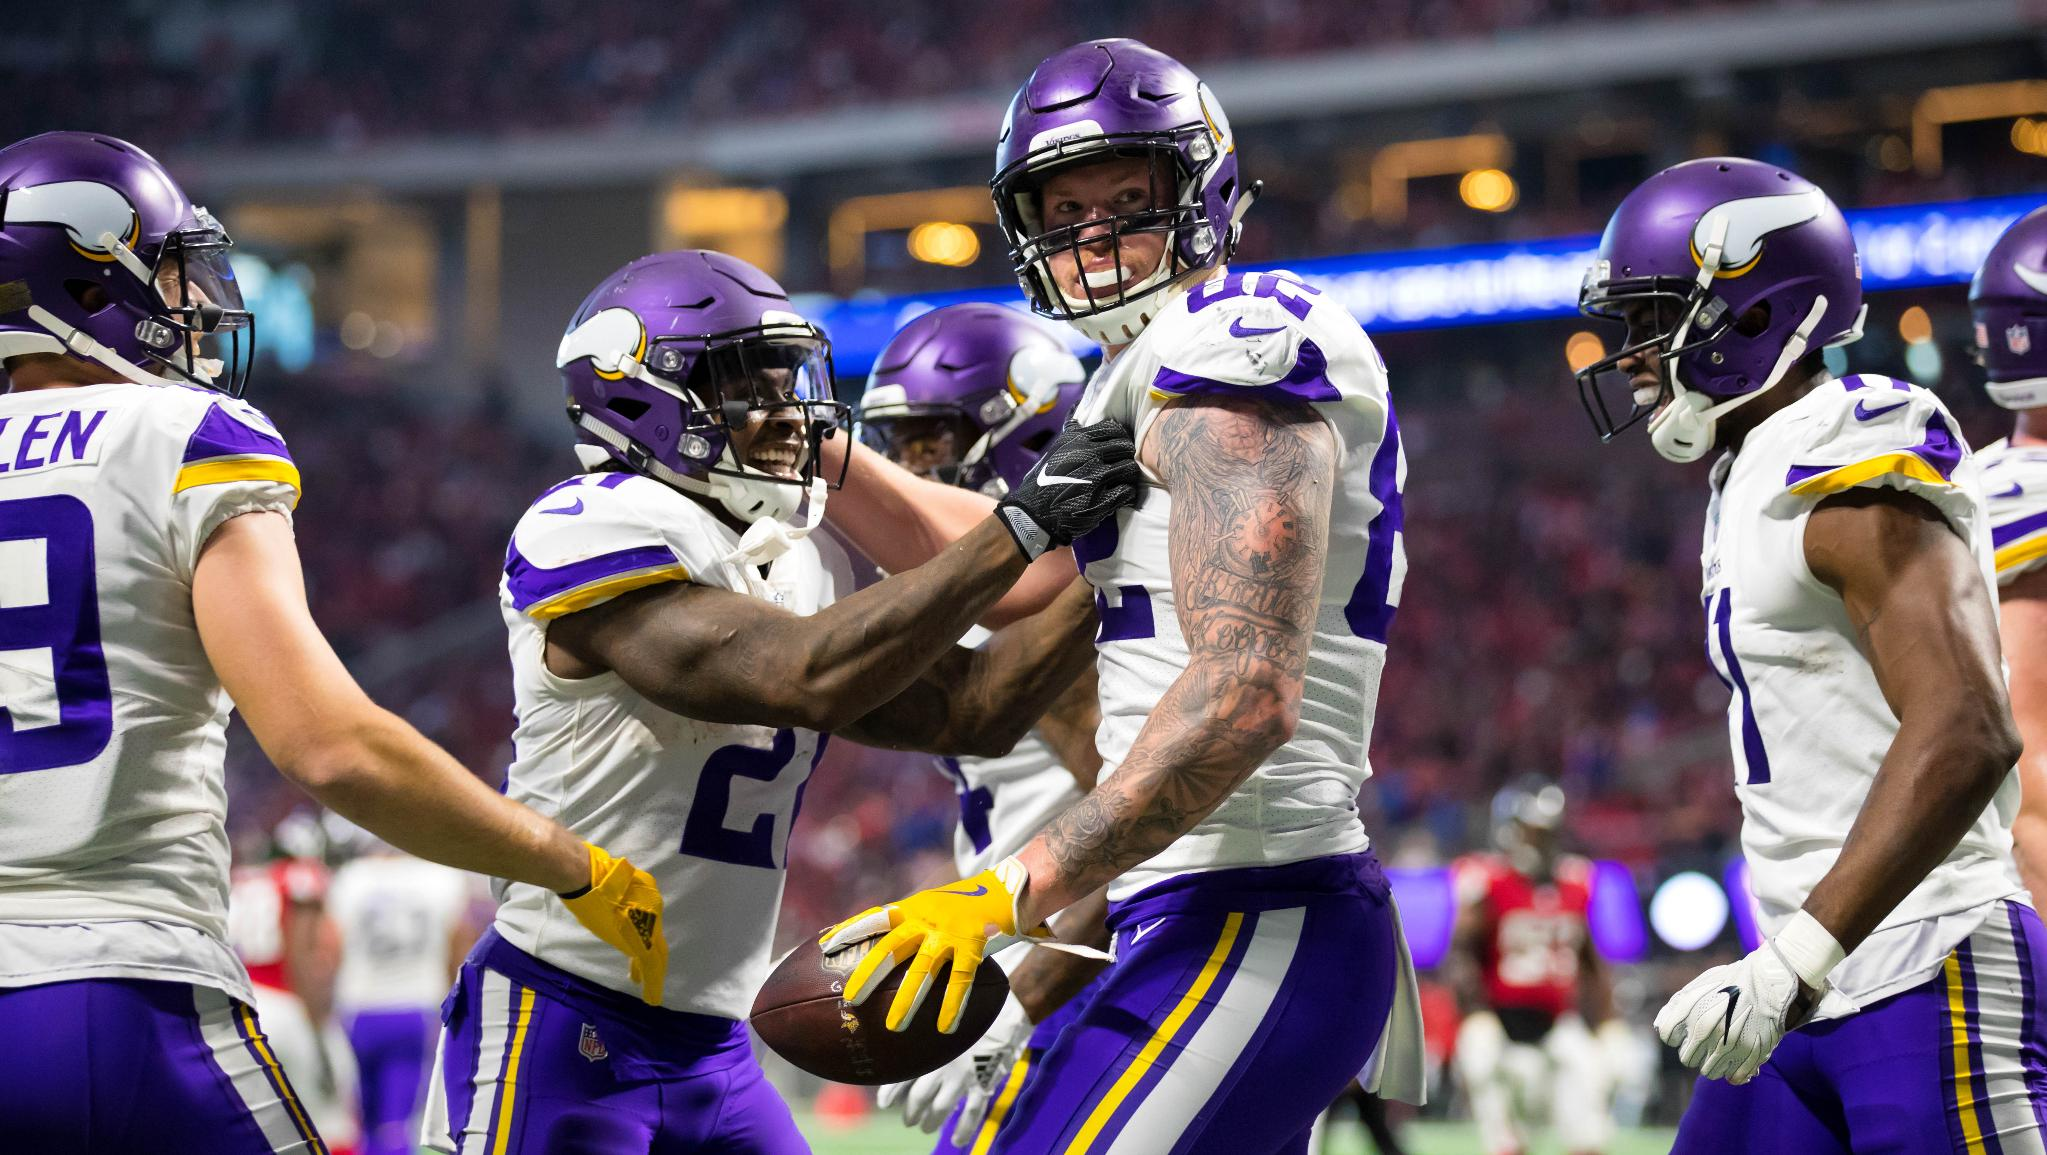 .@KyleRudolph82 finished tied for 2nd among NFL TEs with 8 TDs in 2017.  ��: https://t.co/BlJMf0jM1L https://t.co/eqvuIDJMjK